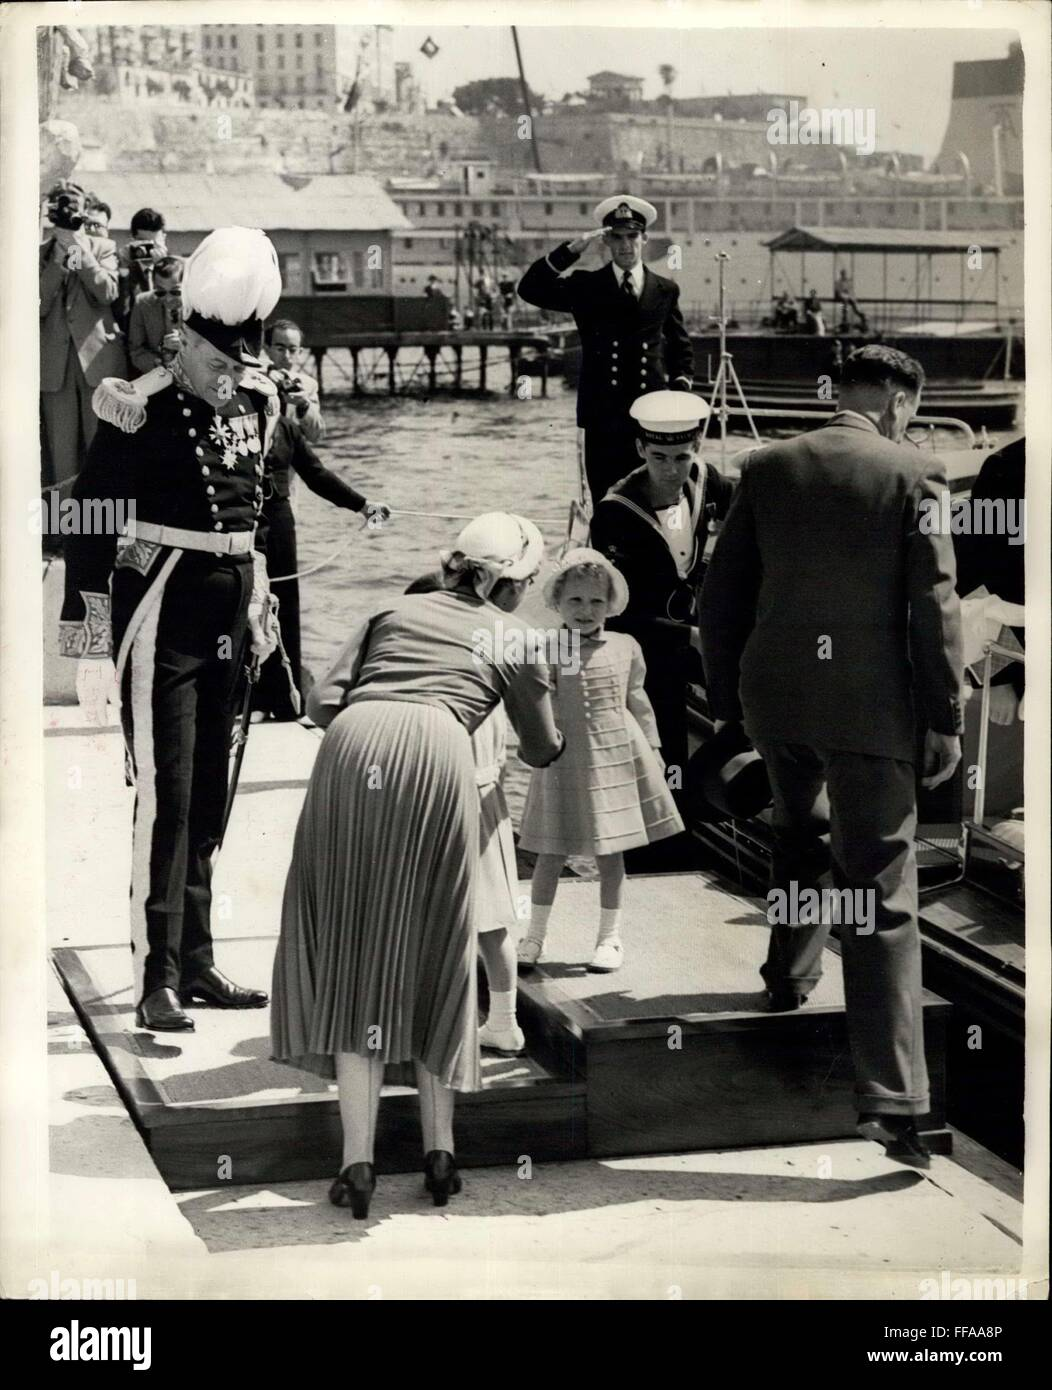 1964 - Prince Charles and Princess Anne watch Malta Parade.: Prince Charles and Princess Anne come ashore at Custom - Stock Image